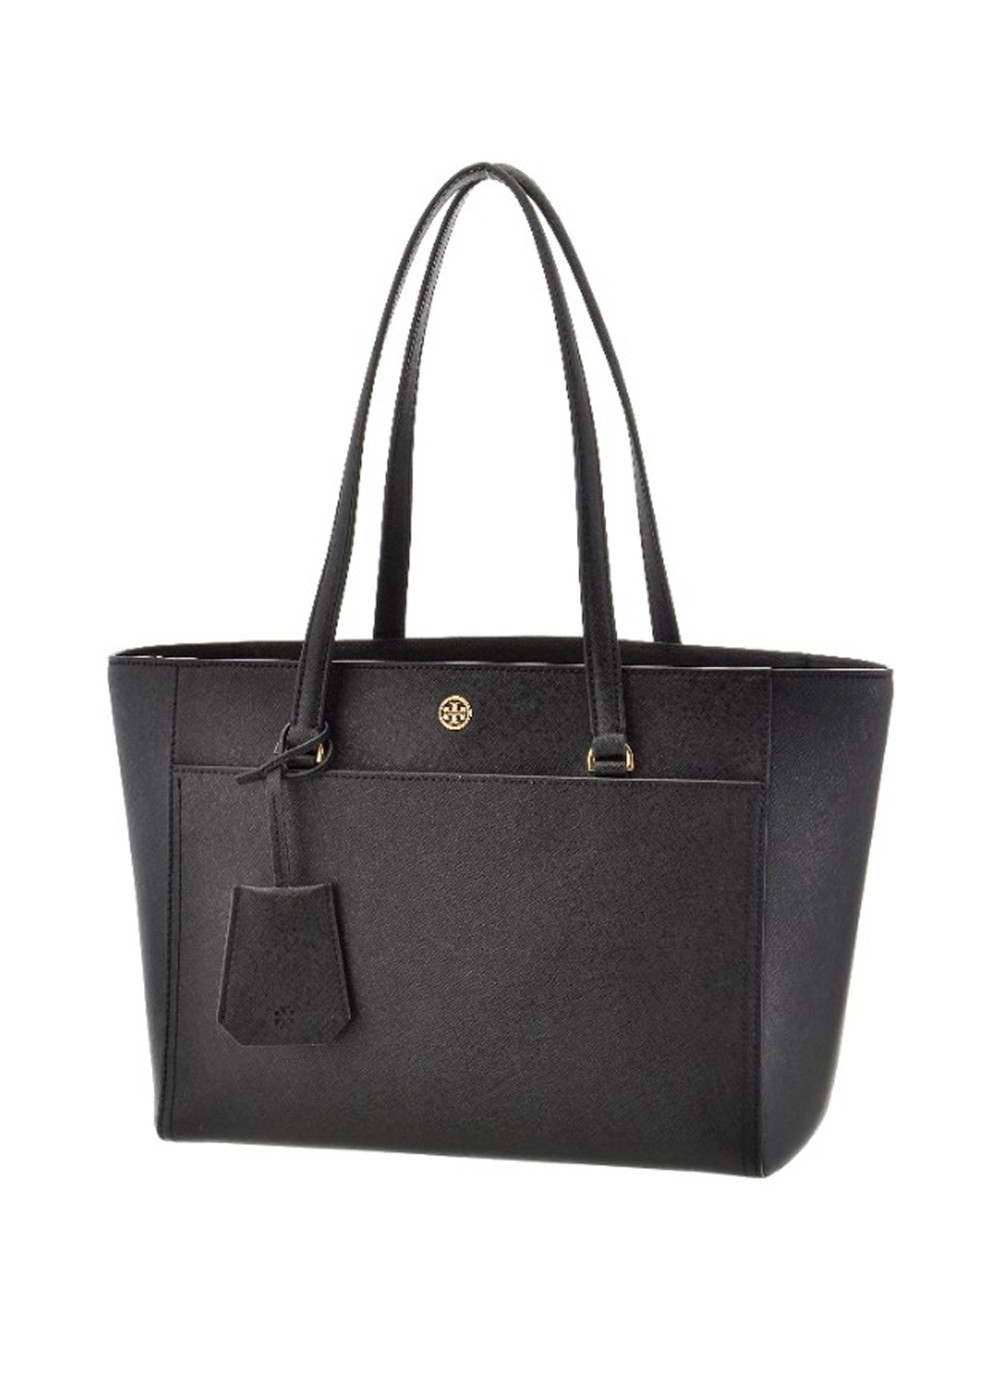 TORY BURCH|トリバーチ|ROBINSON|ロビンソン|SMALL TOTE